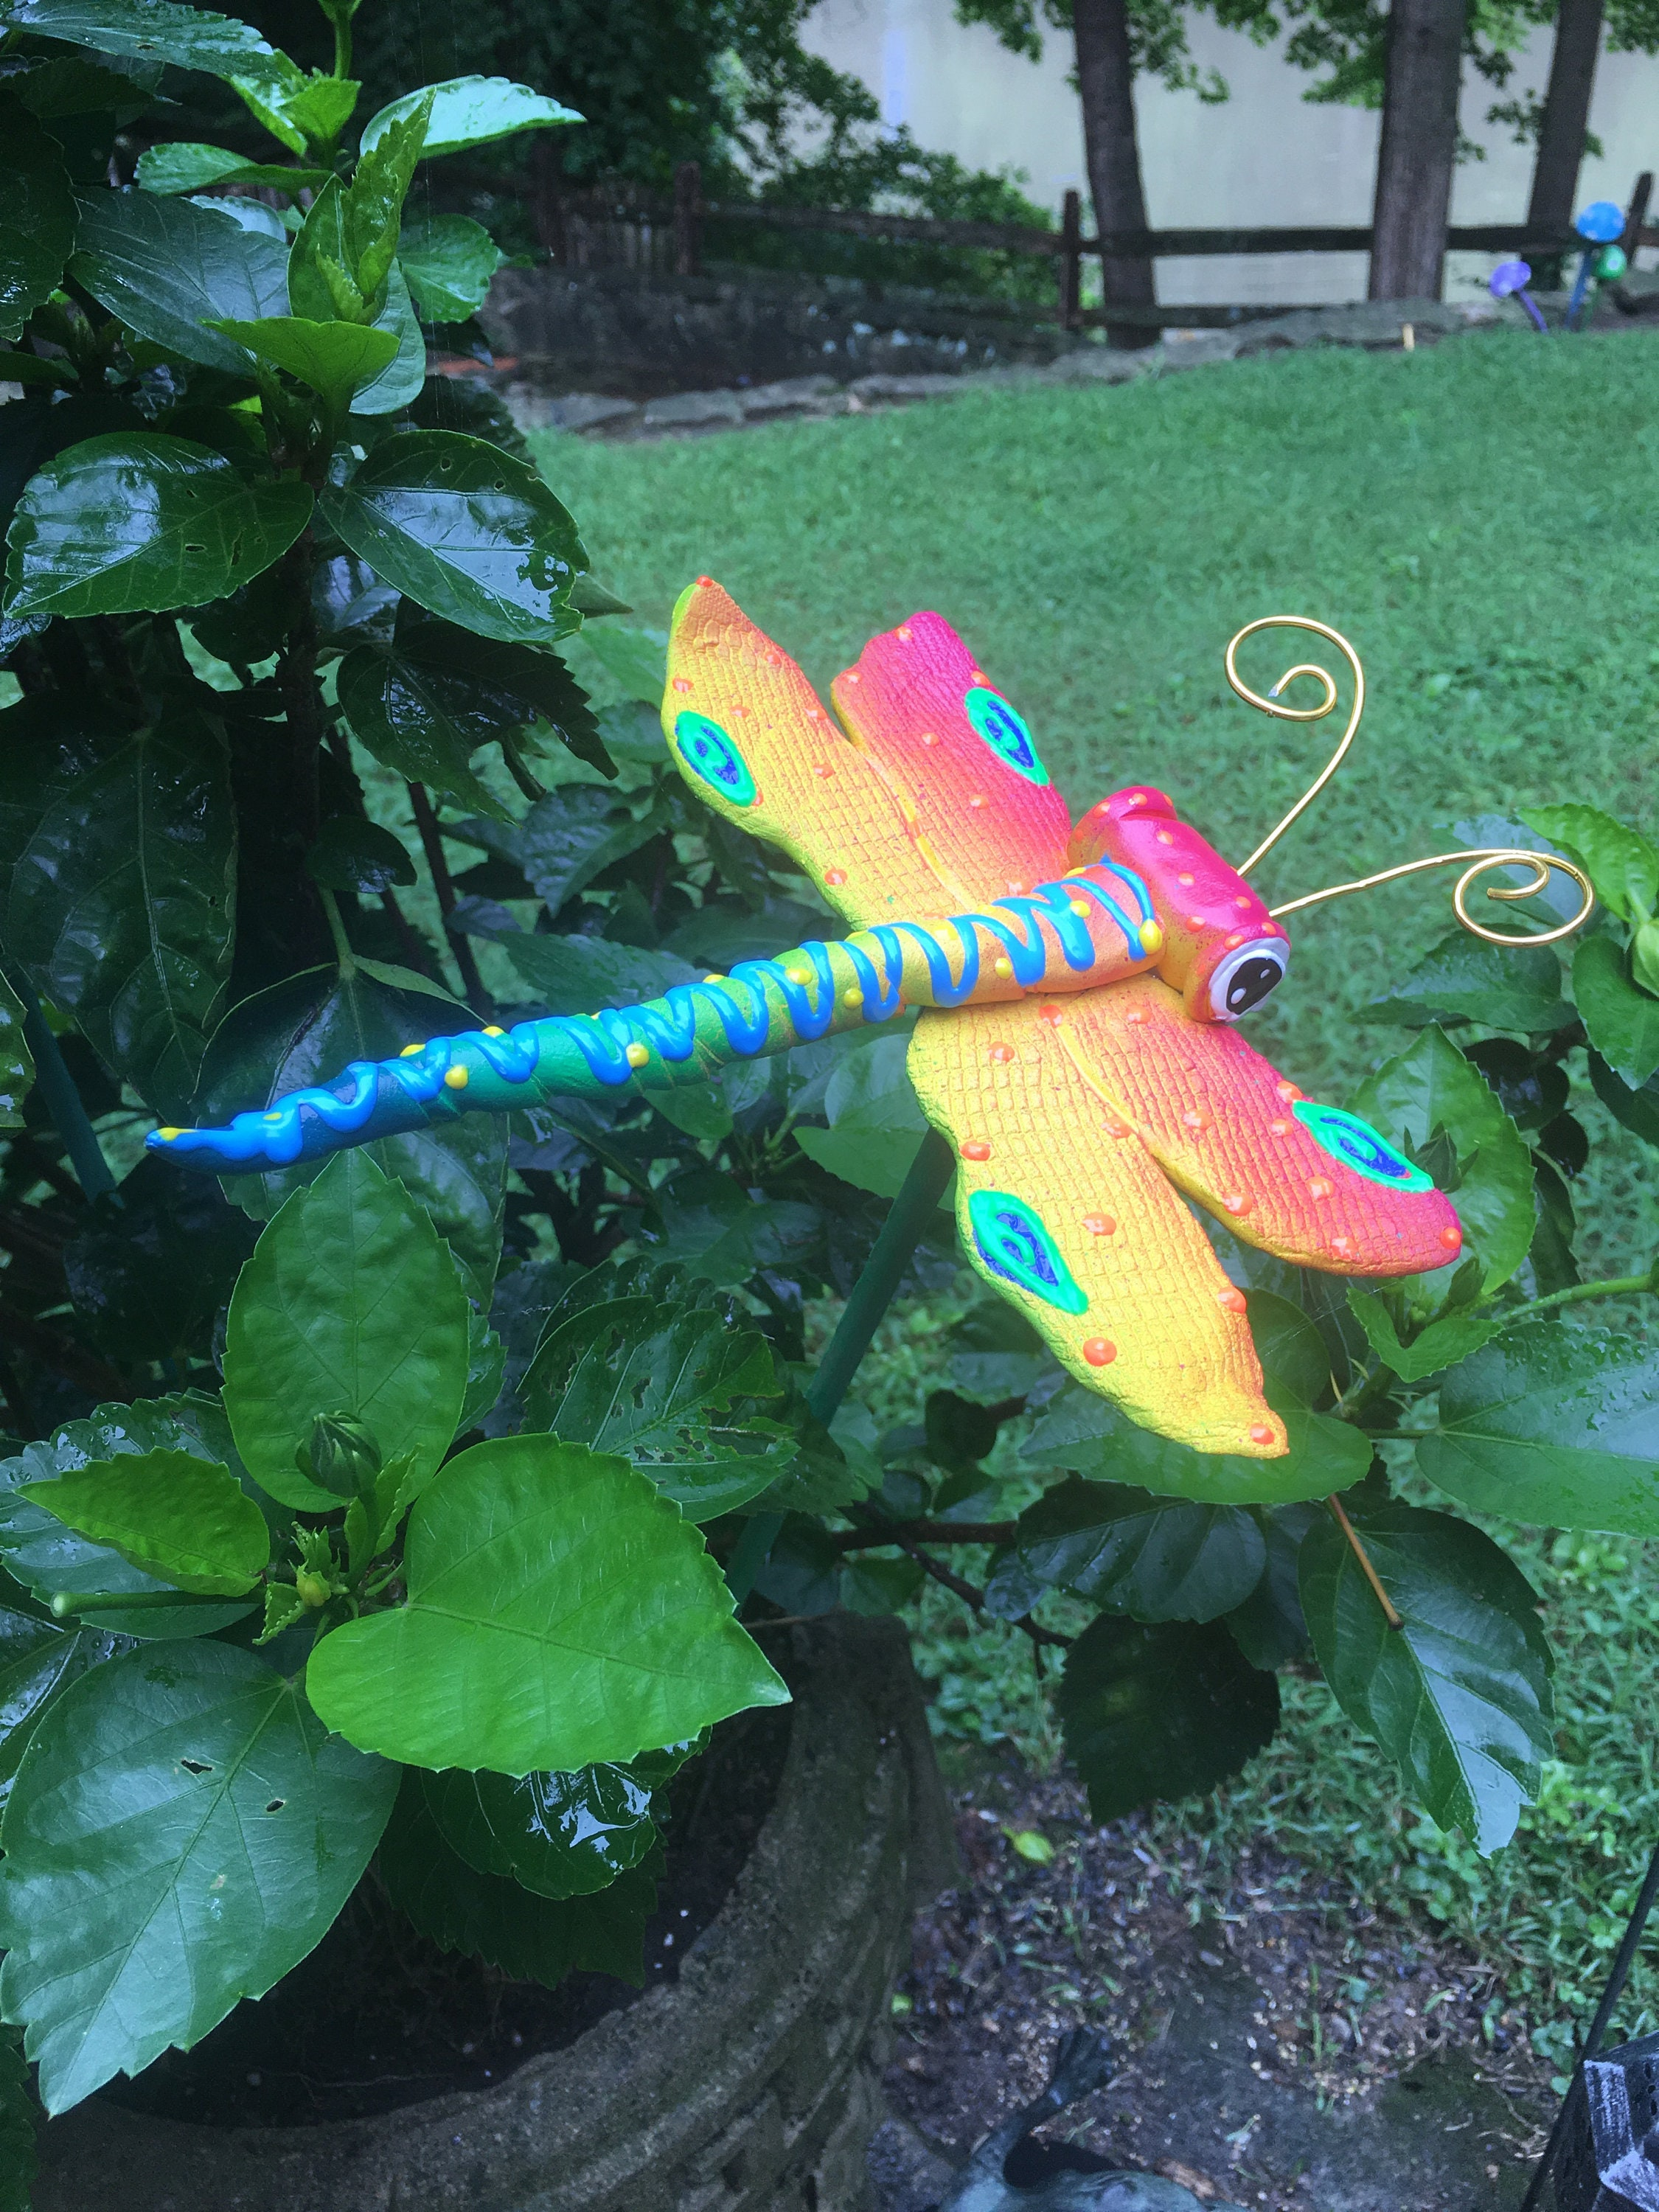 Ceramic Dragonfly Garden Stake, Garden Stakes,Potted Plants, Great  Gift,Lawn Decor,Outdoor Garden Stake,Garden Decor,